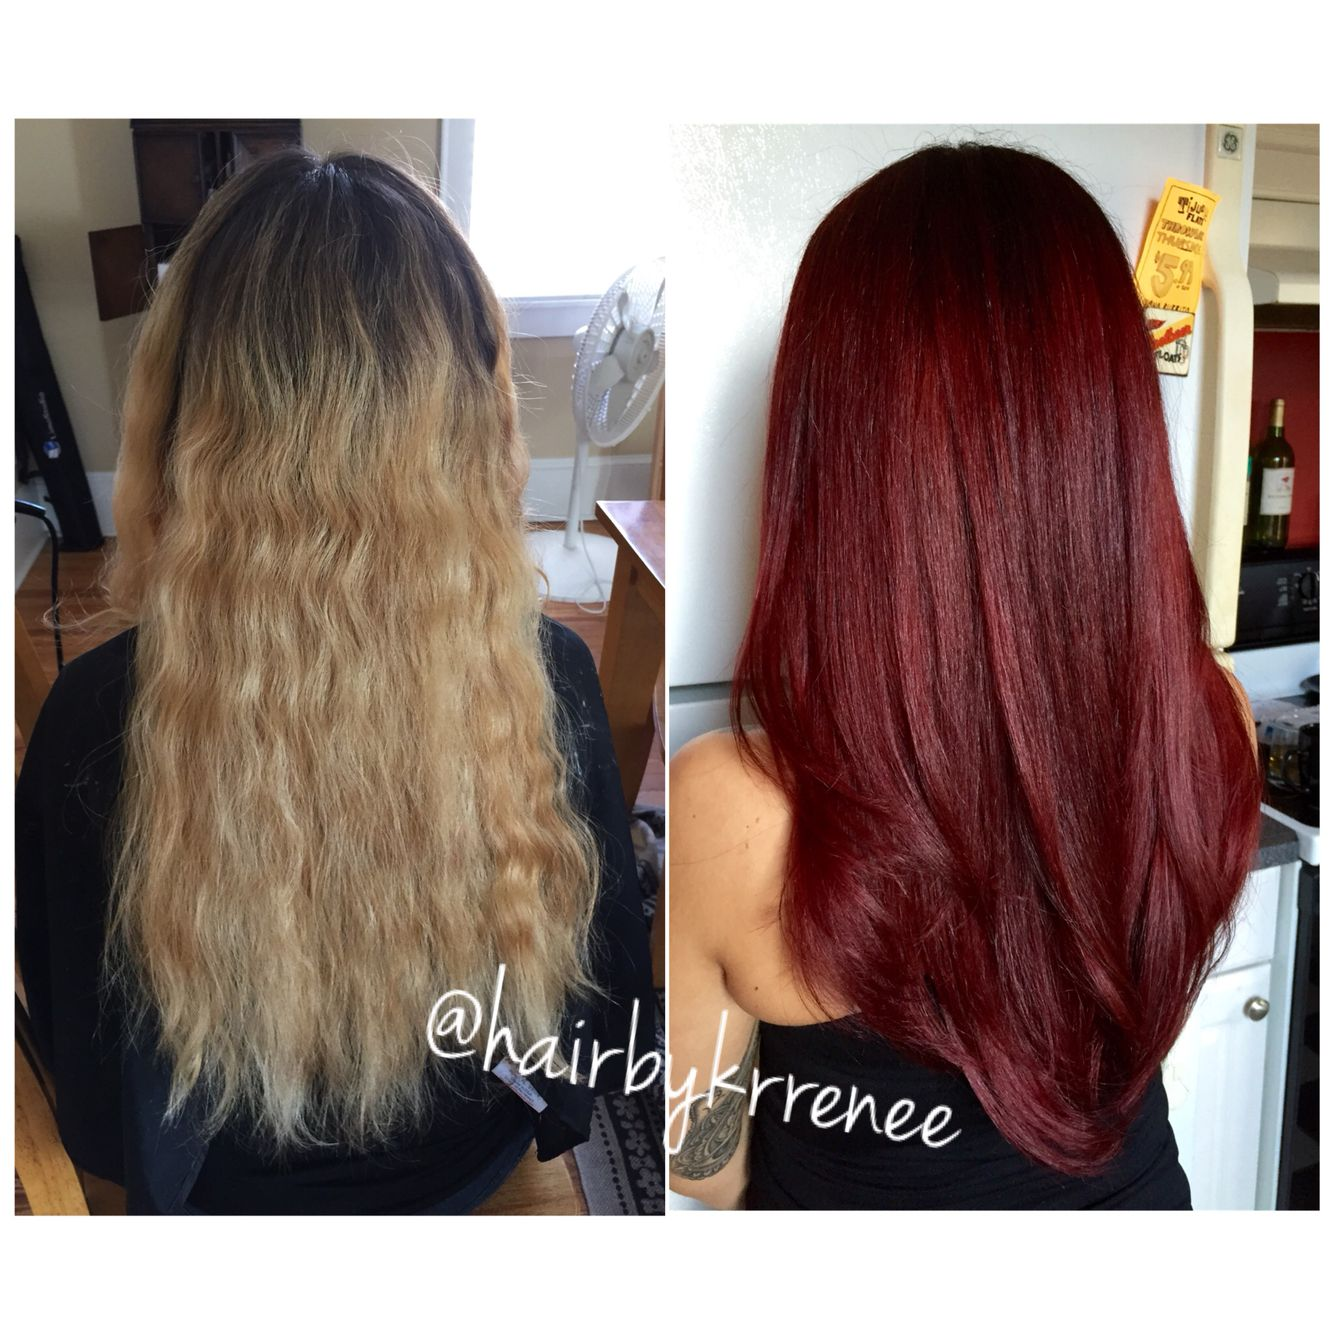 Blonde and red hair! Blonde highlights and red hidden underneath ...